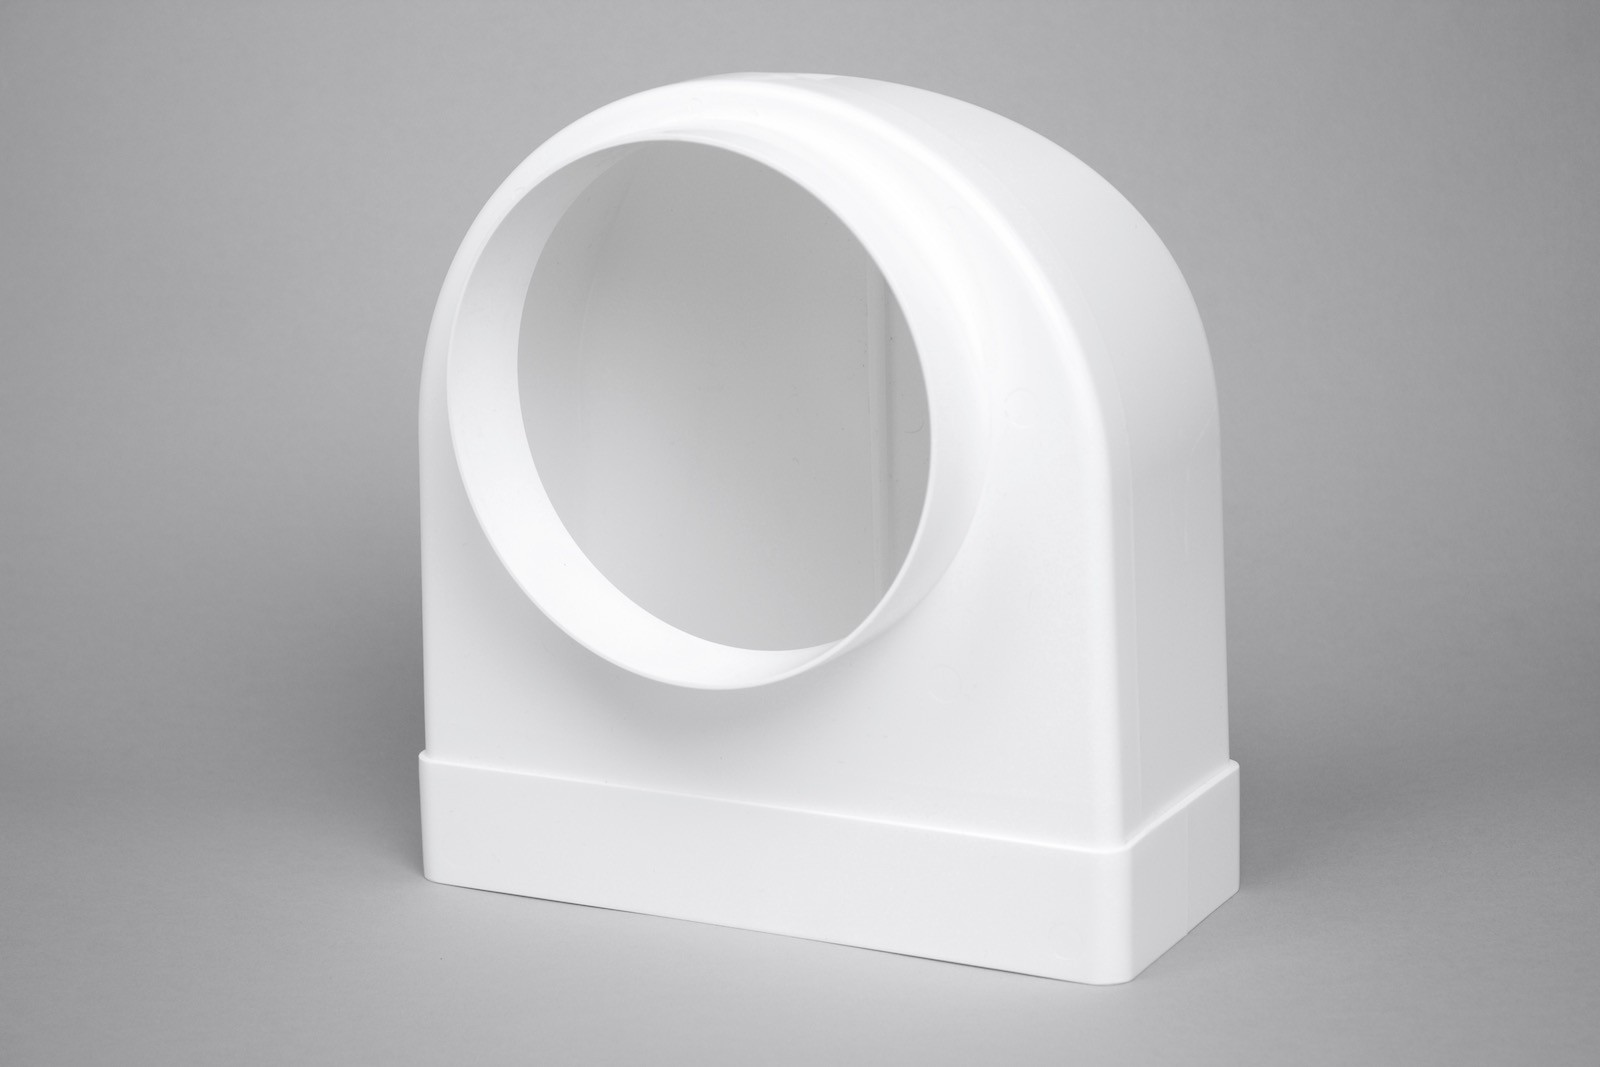 220mm x 90mm flat to 150mm round 90 degree bend